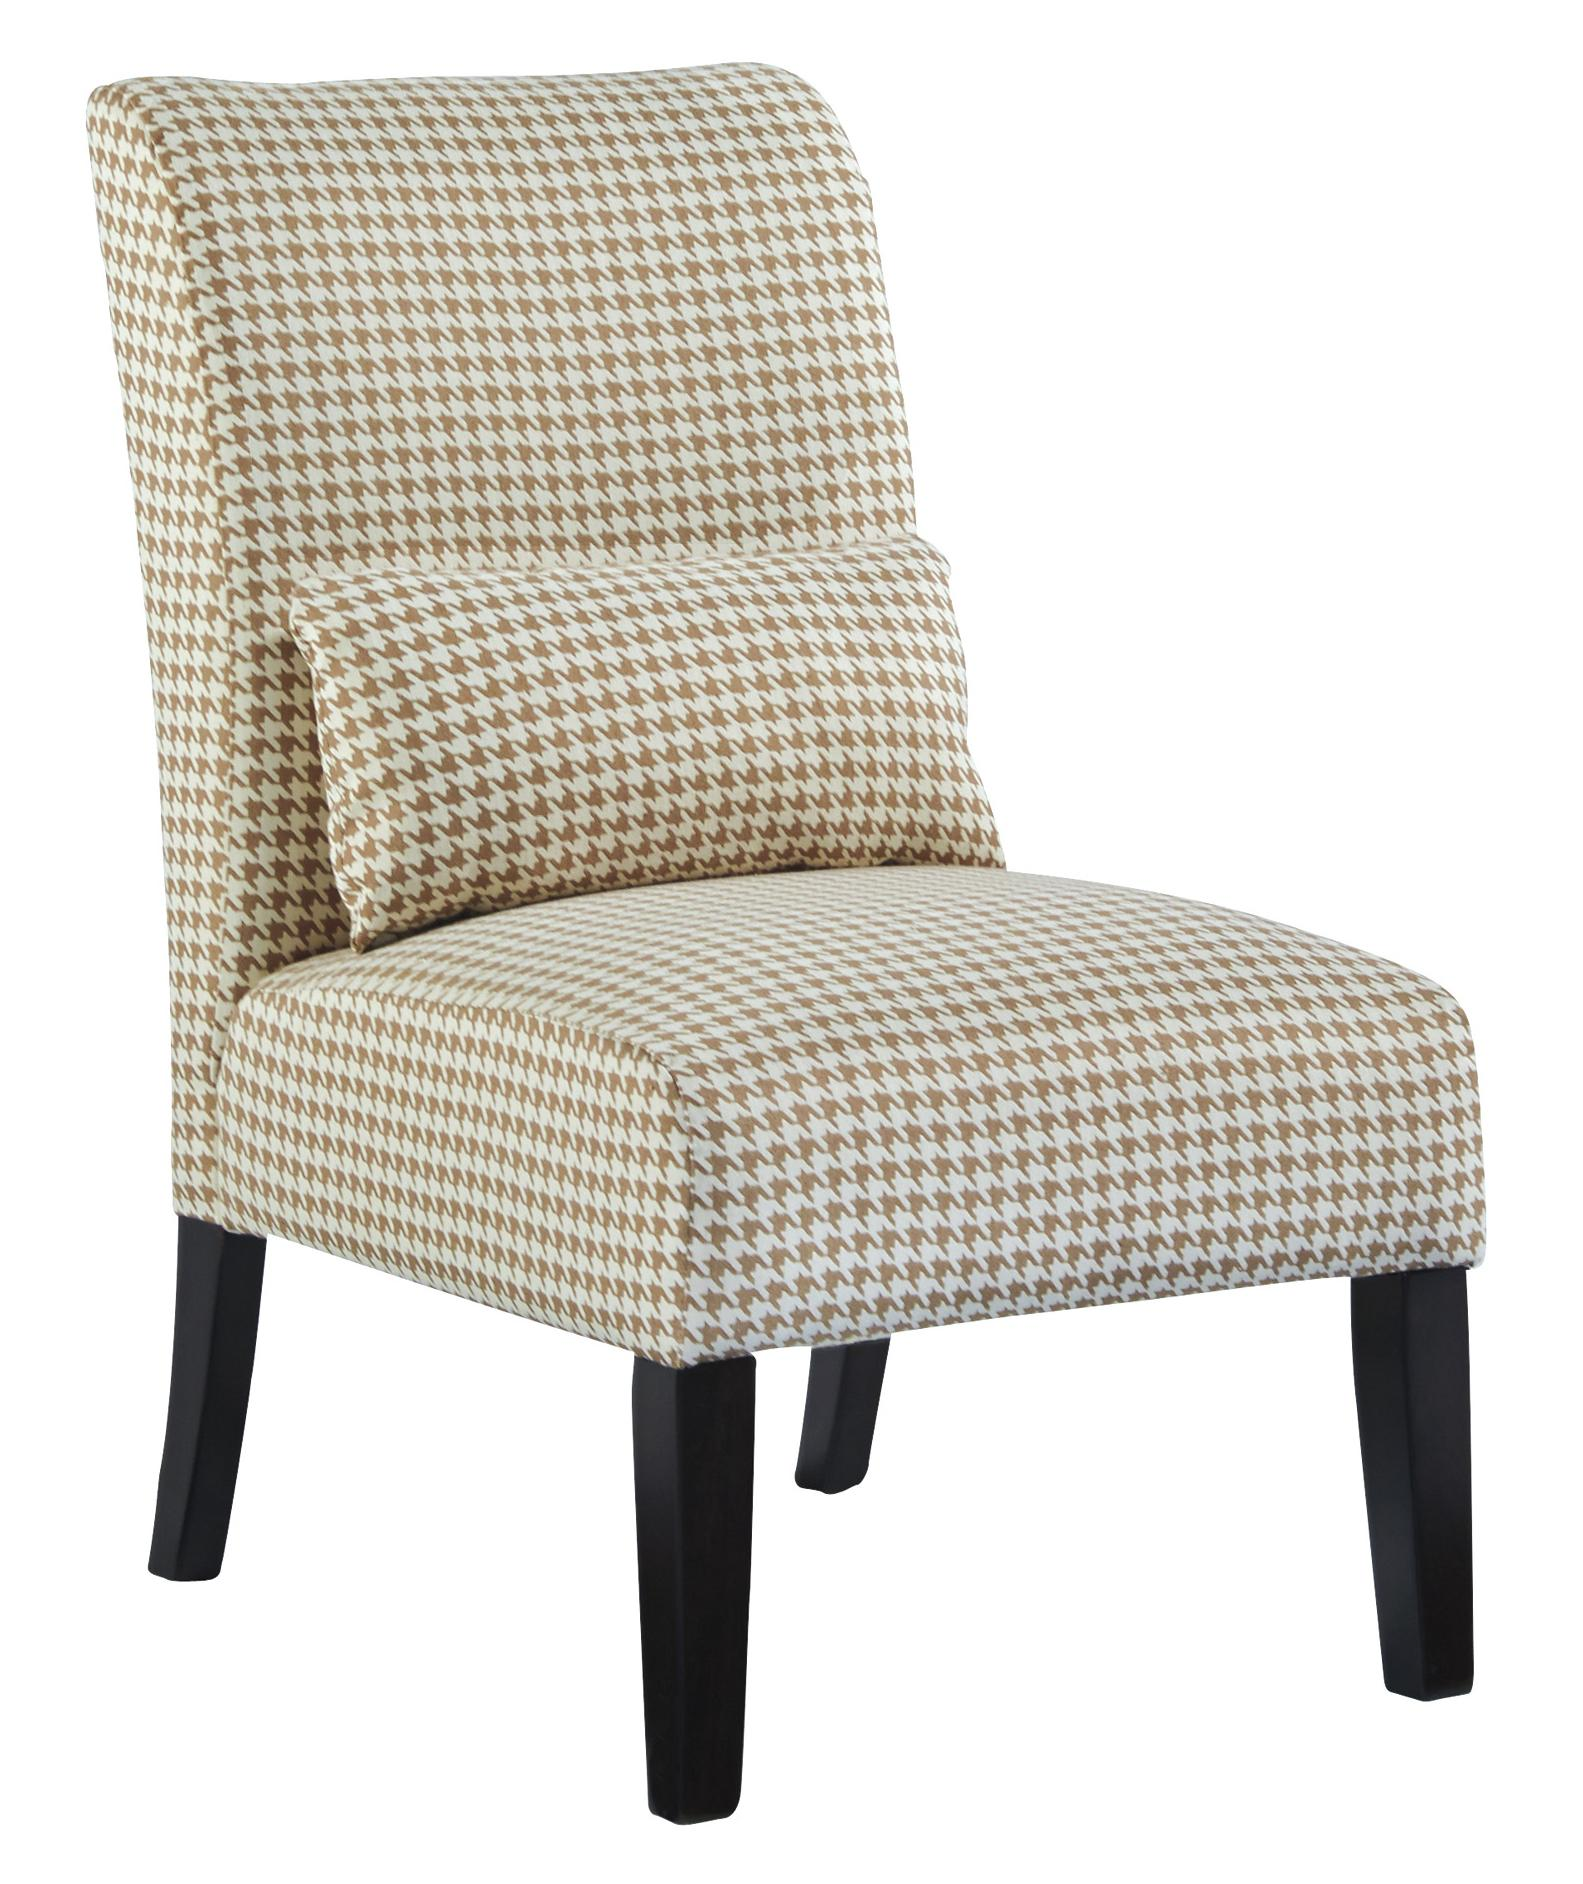 Signature Design by Ashley Annora - Caramel Accent Chair - Item Number: 6160560